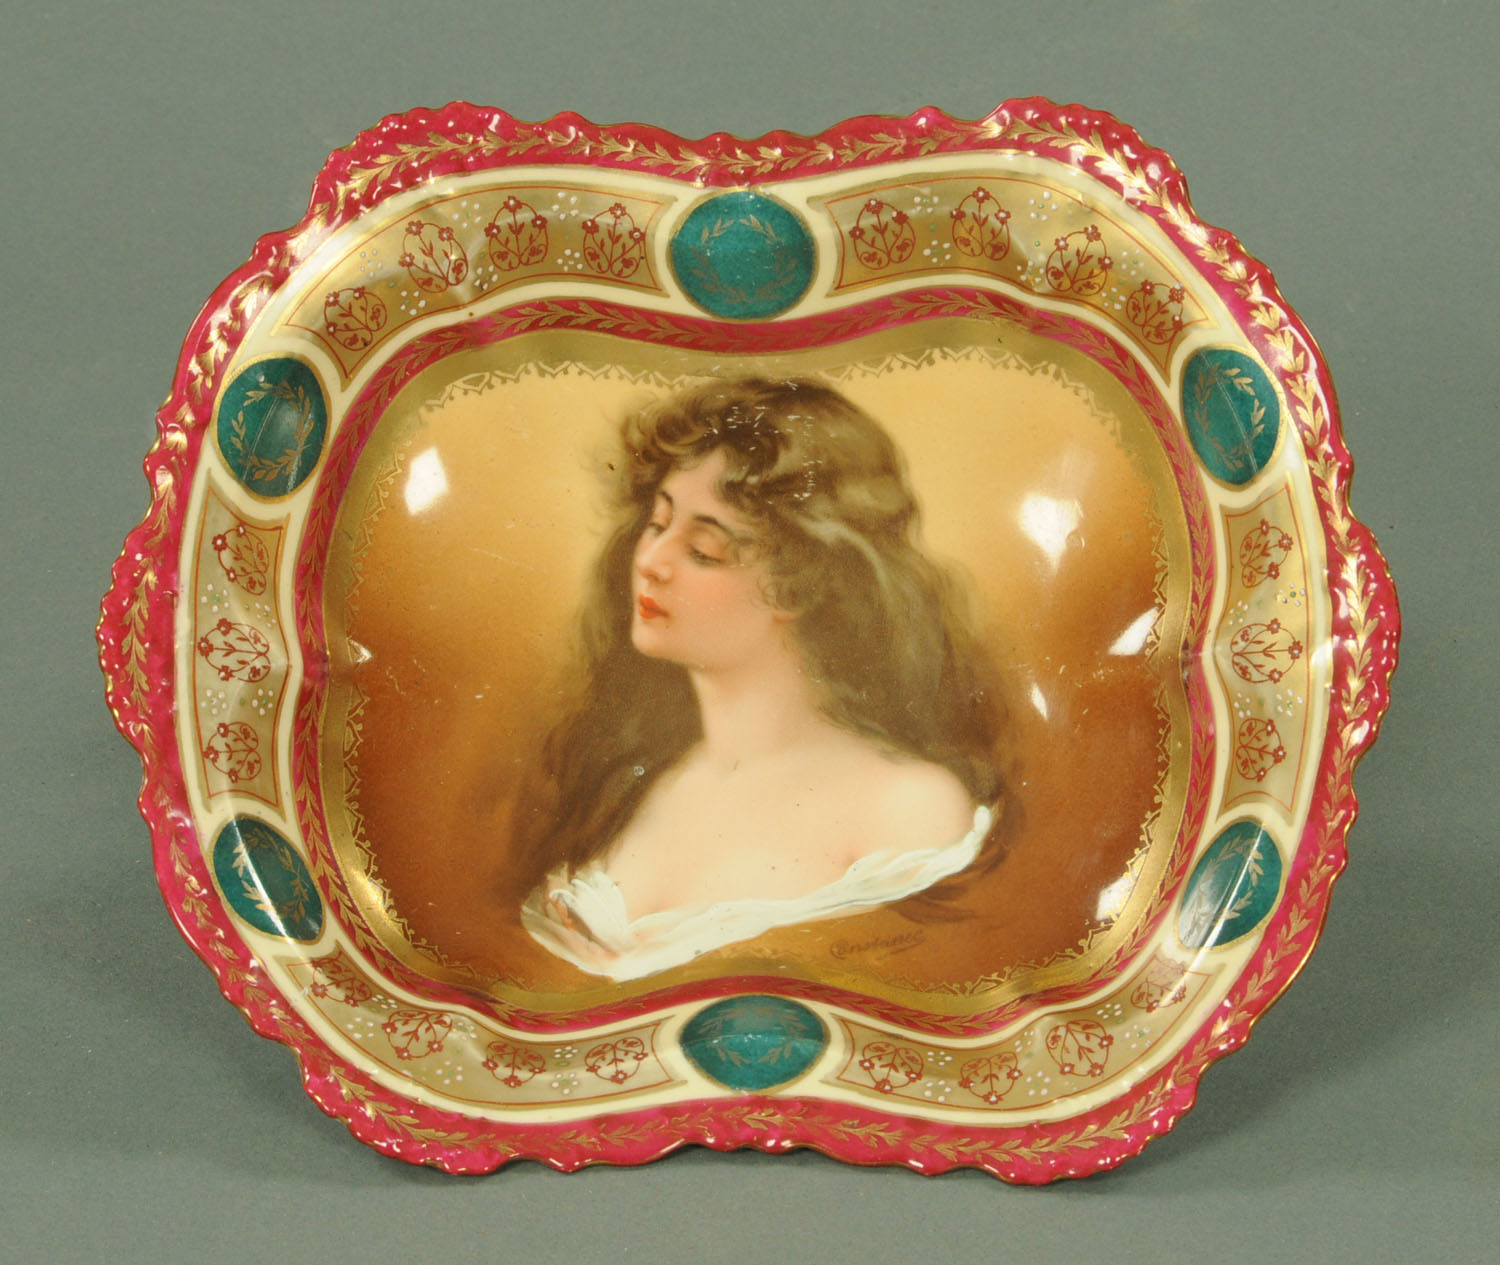 Lot 11 - A Vienna porcelain cabinet bowl, decorated with a female portrait bust,